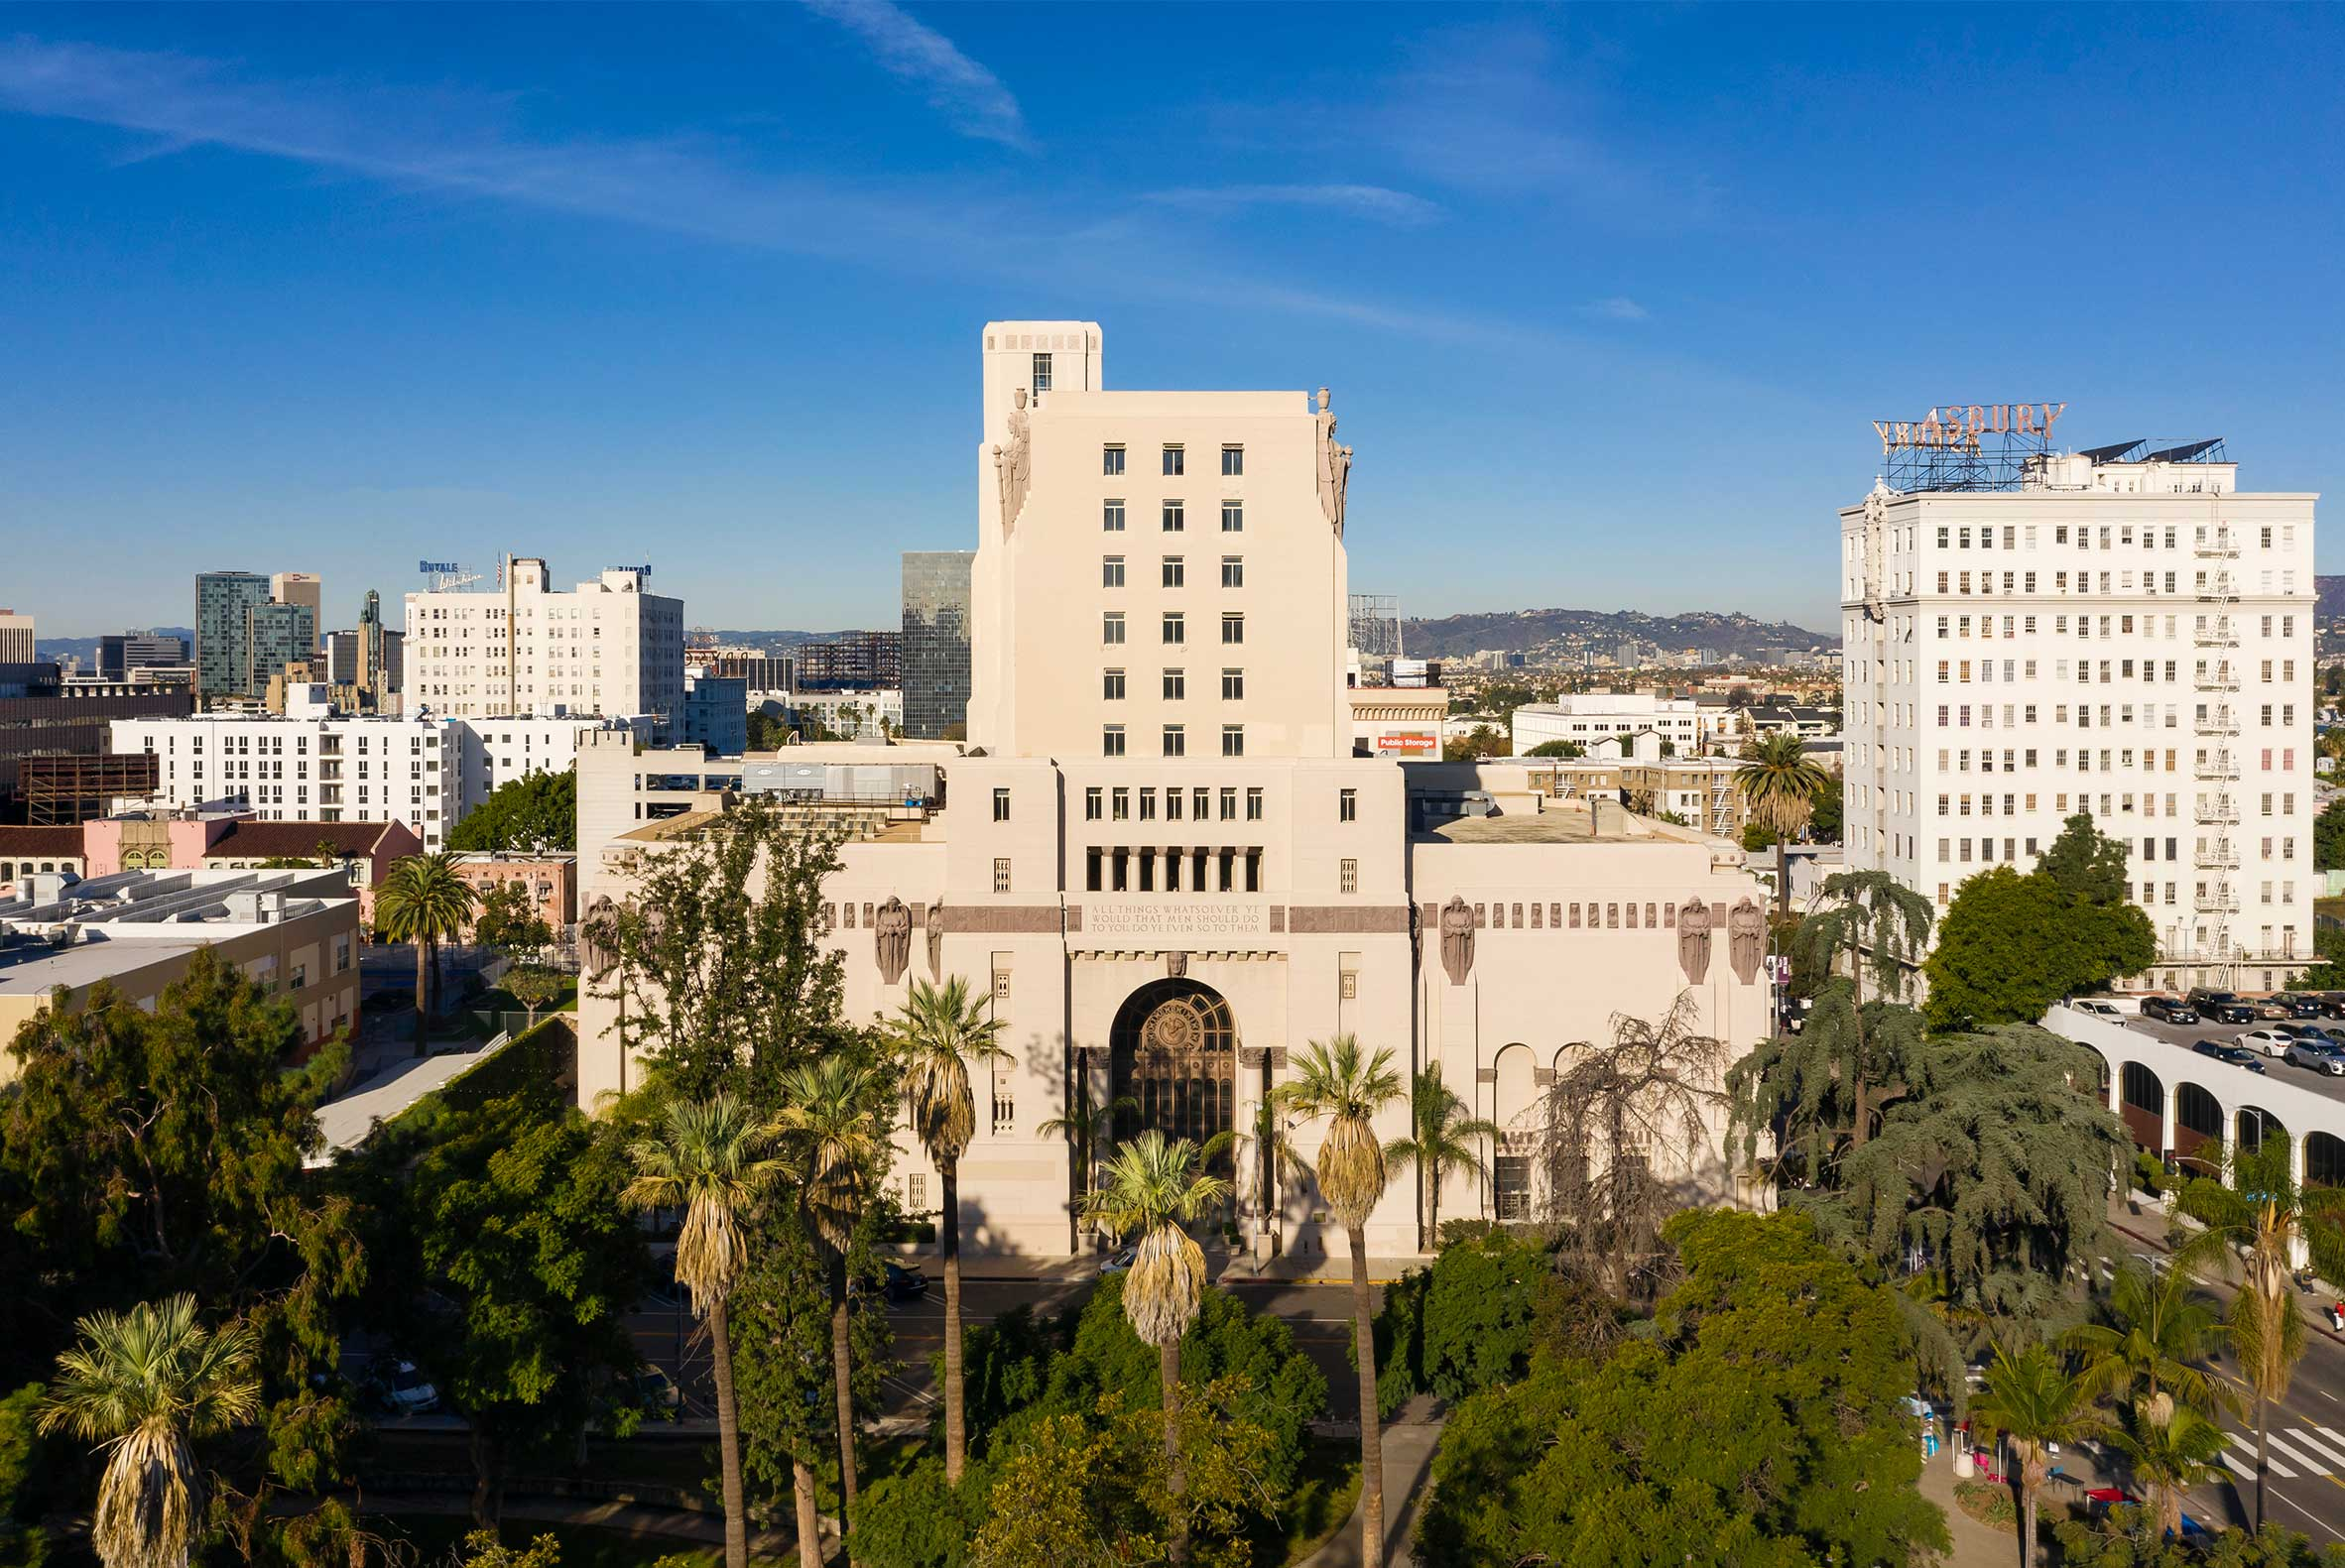 The MacArthur Exterior with MacArthur Park Trees and Blue Sky